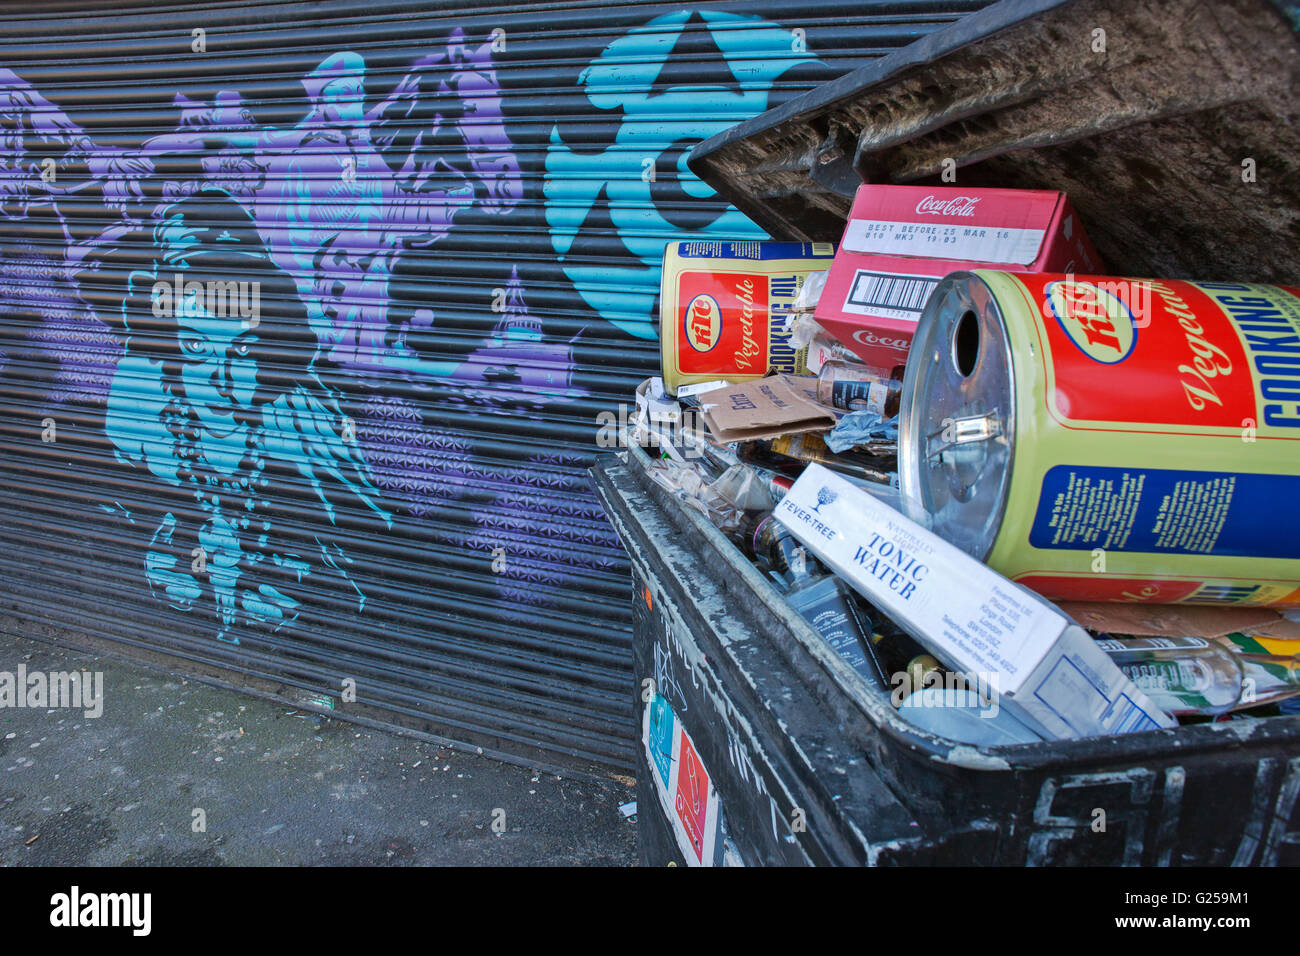 'no Dumping', Industrial cooking oil drums in waste bin by mural Camden town - Stock Image